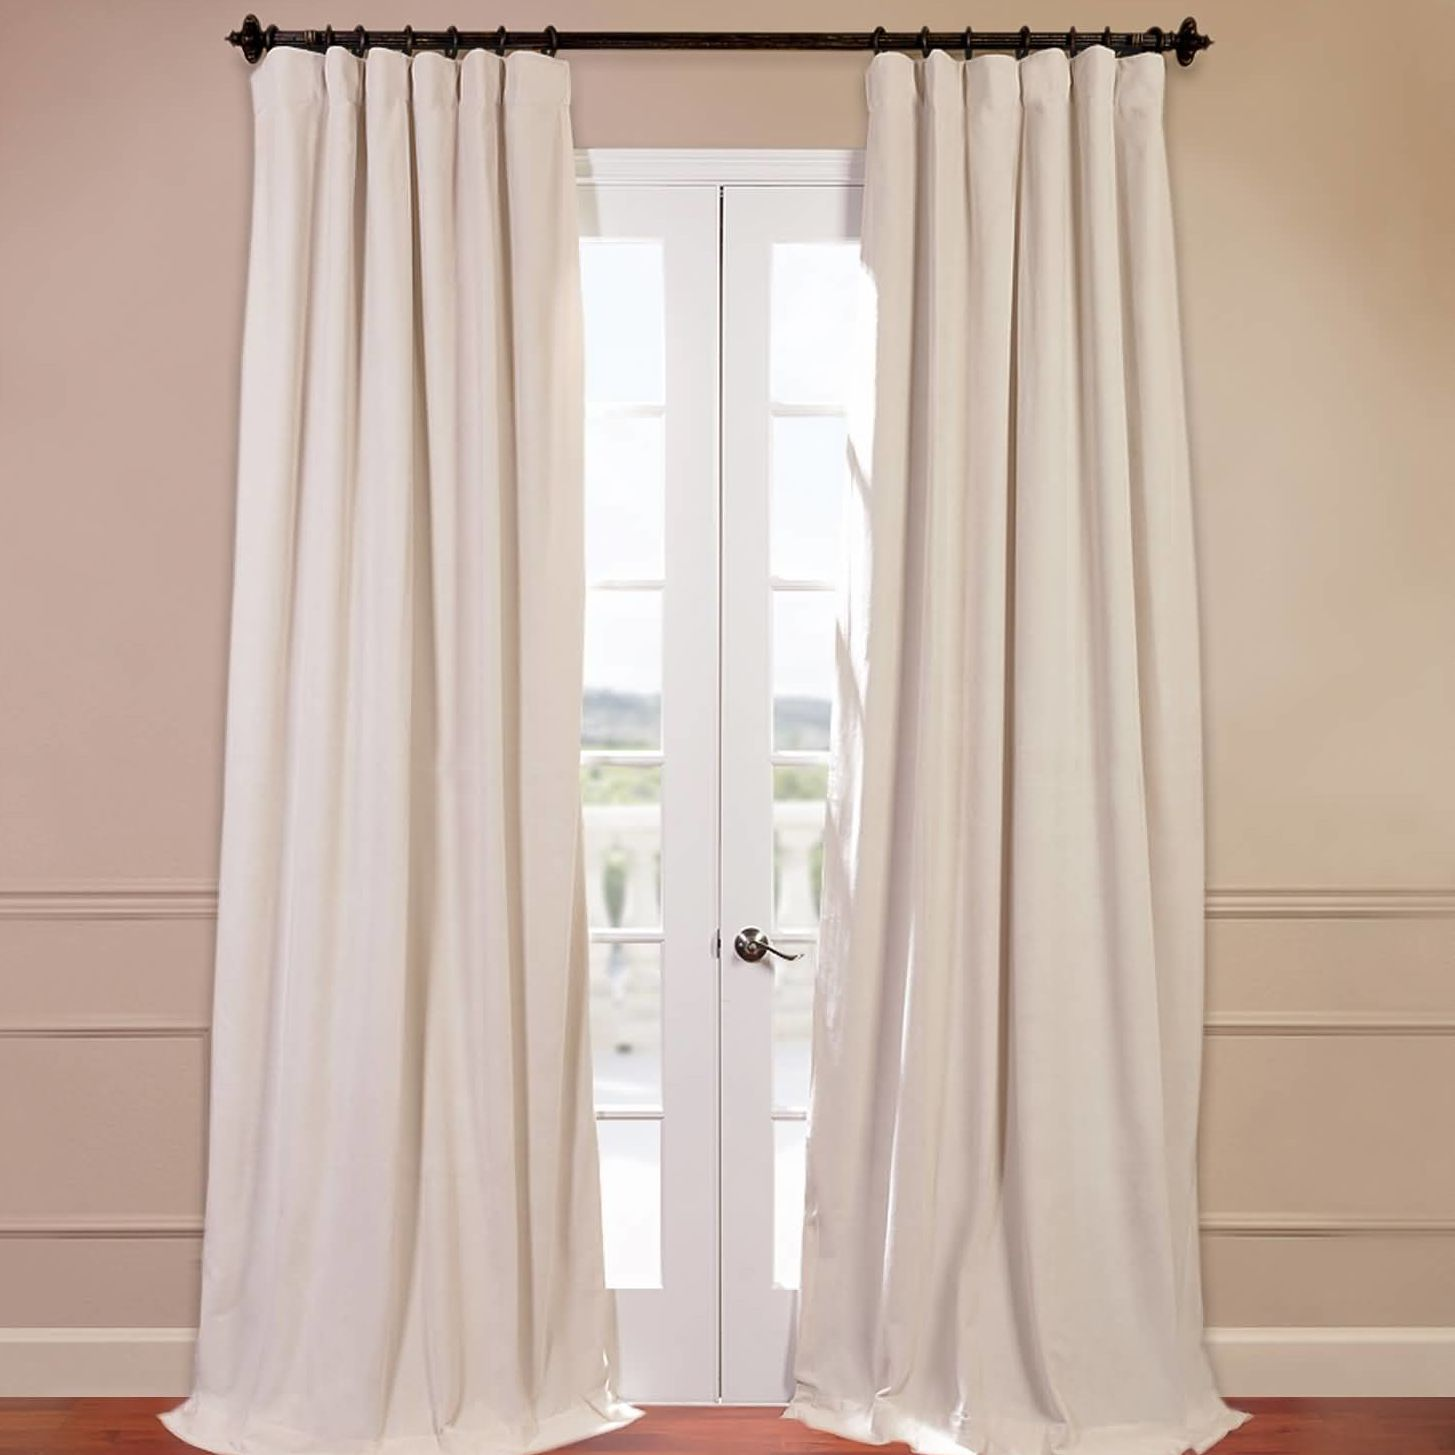 gr and to patio ideas velvet door z geometric curtain panels related curtains decorations white posts marvelous family target arrangement grey chevron striped ebay